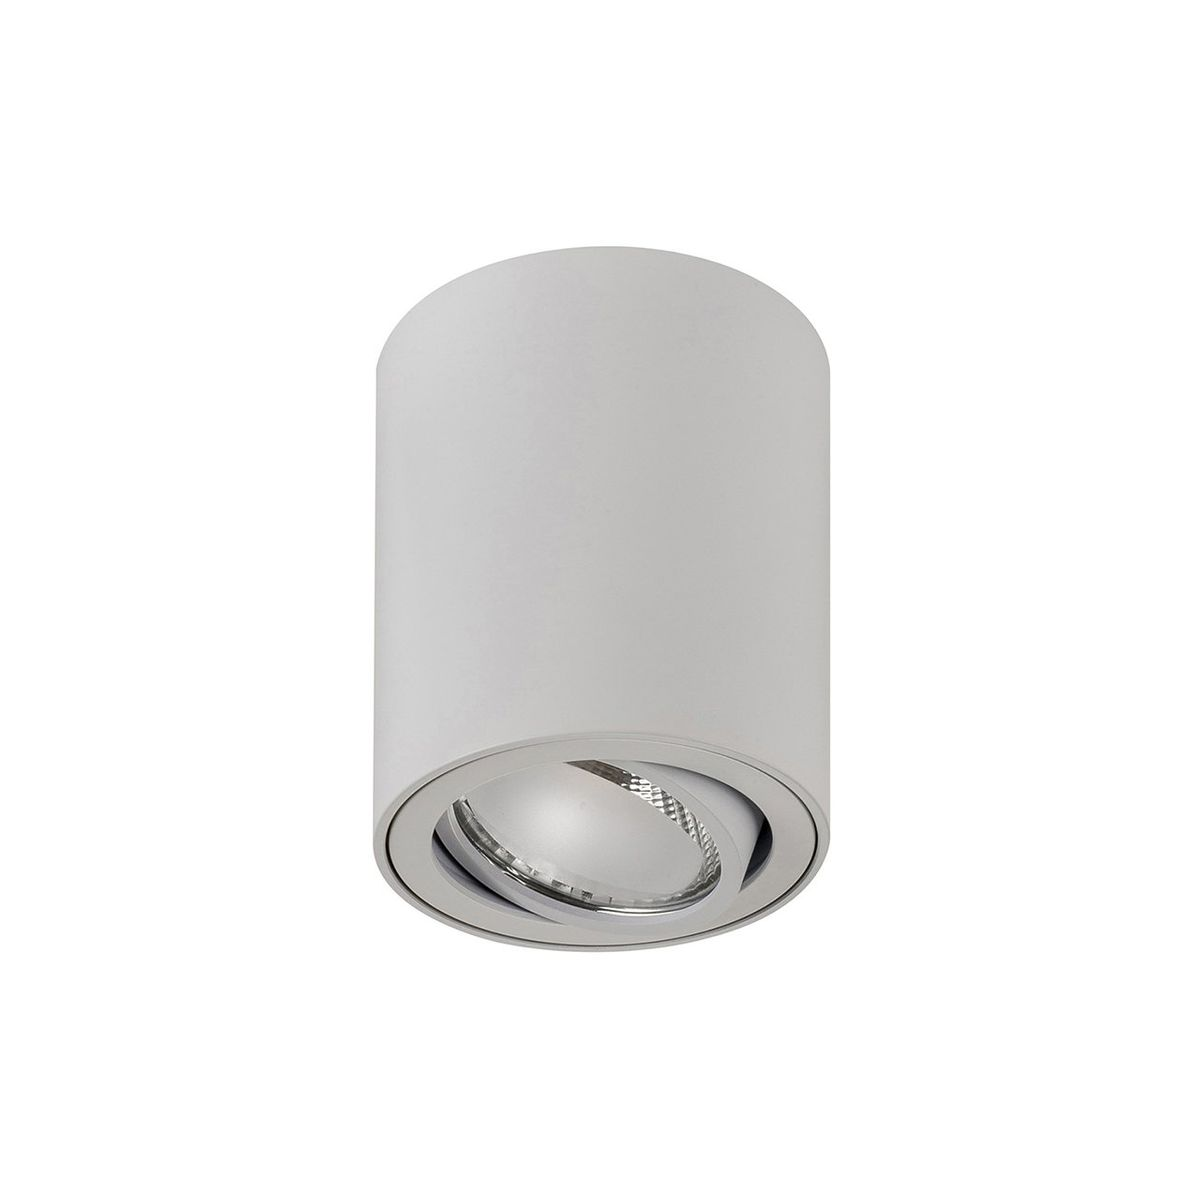 HV5812-WHT - NELLA 7w LED White Adjustable Surface Mounted Downlight – Bild 1